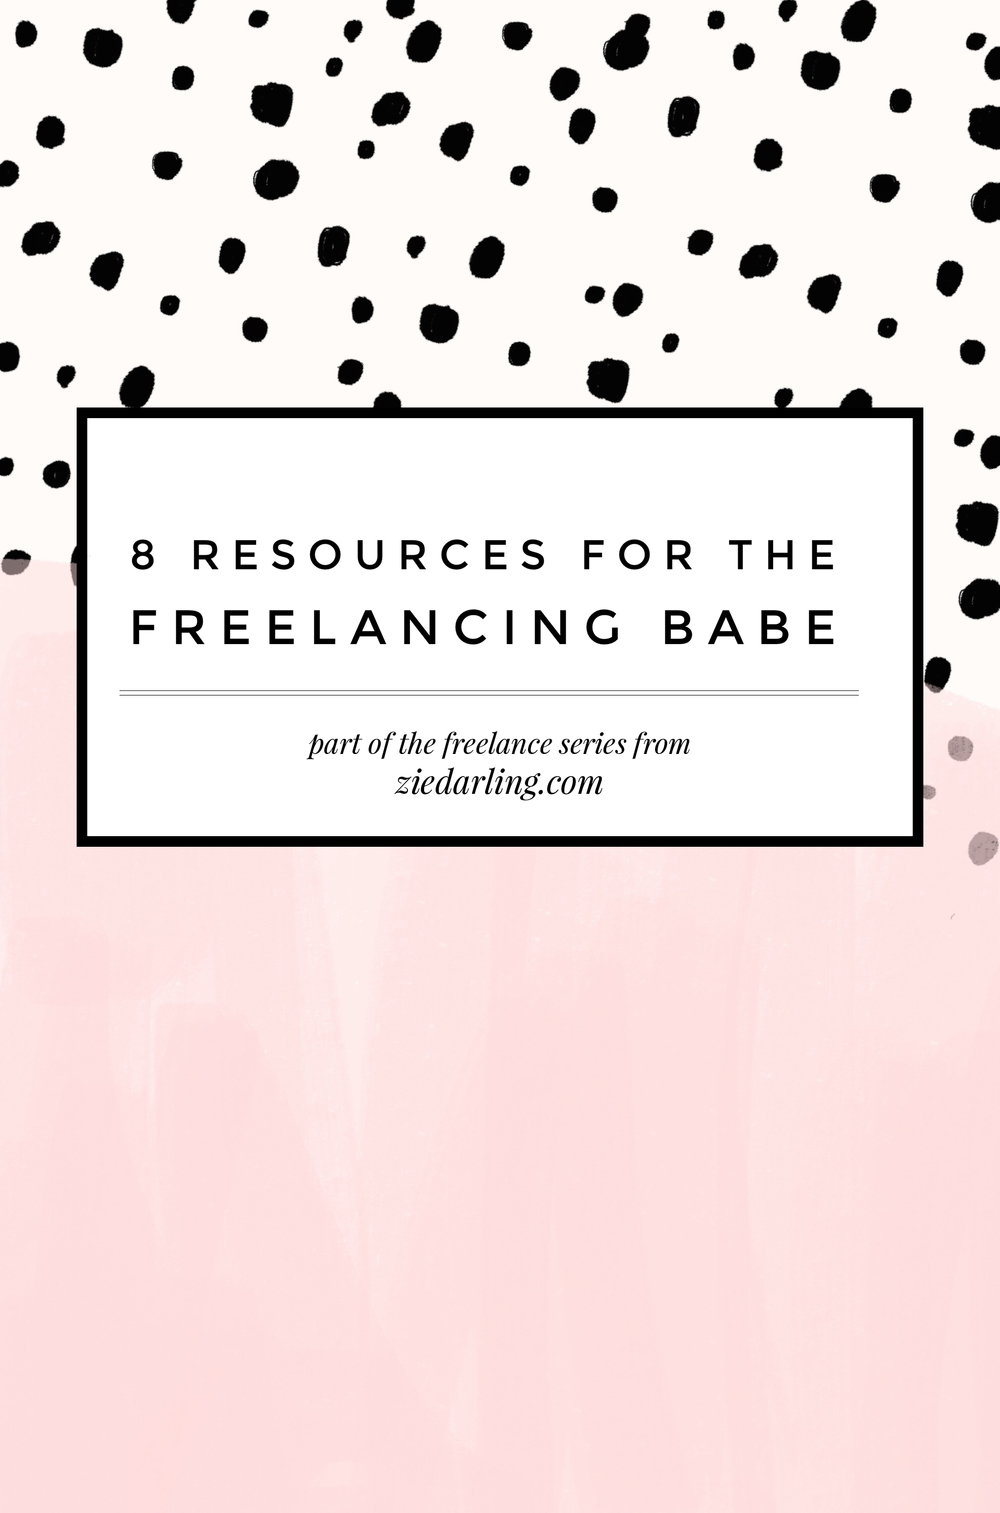 ziedarling.com | 8 Resources for the Freelancing Babe